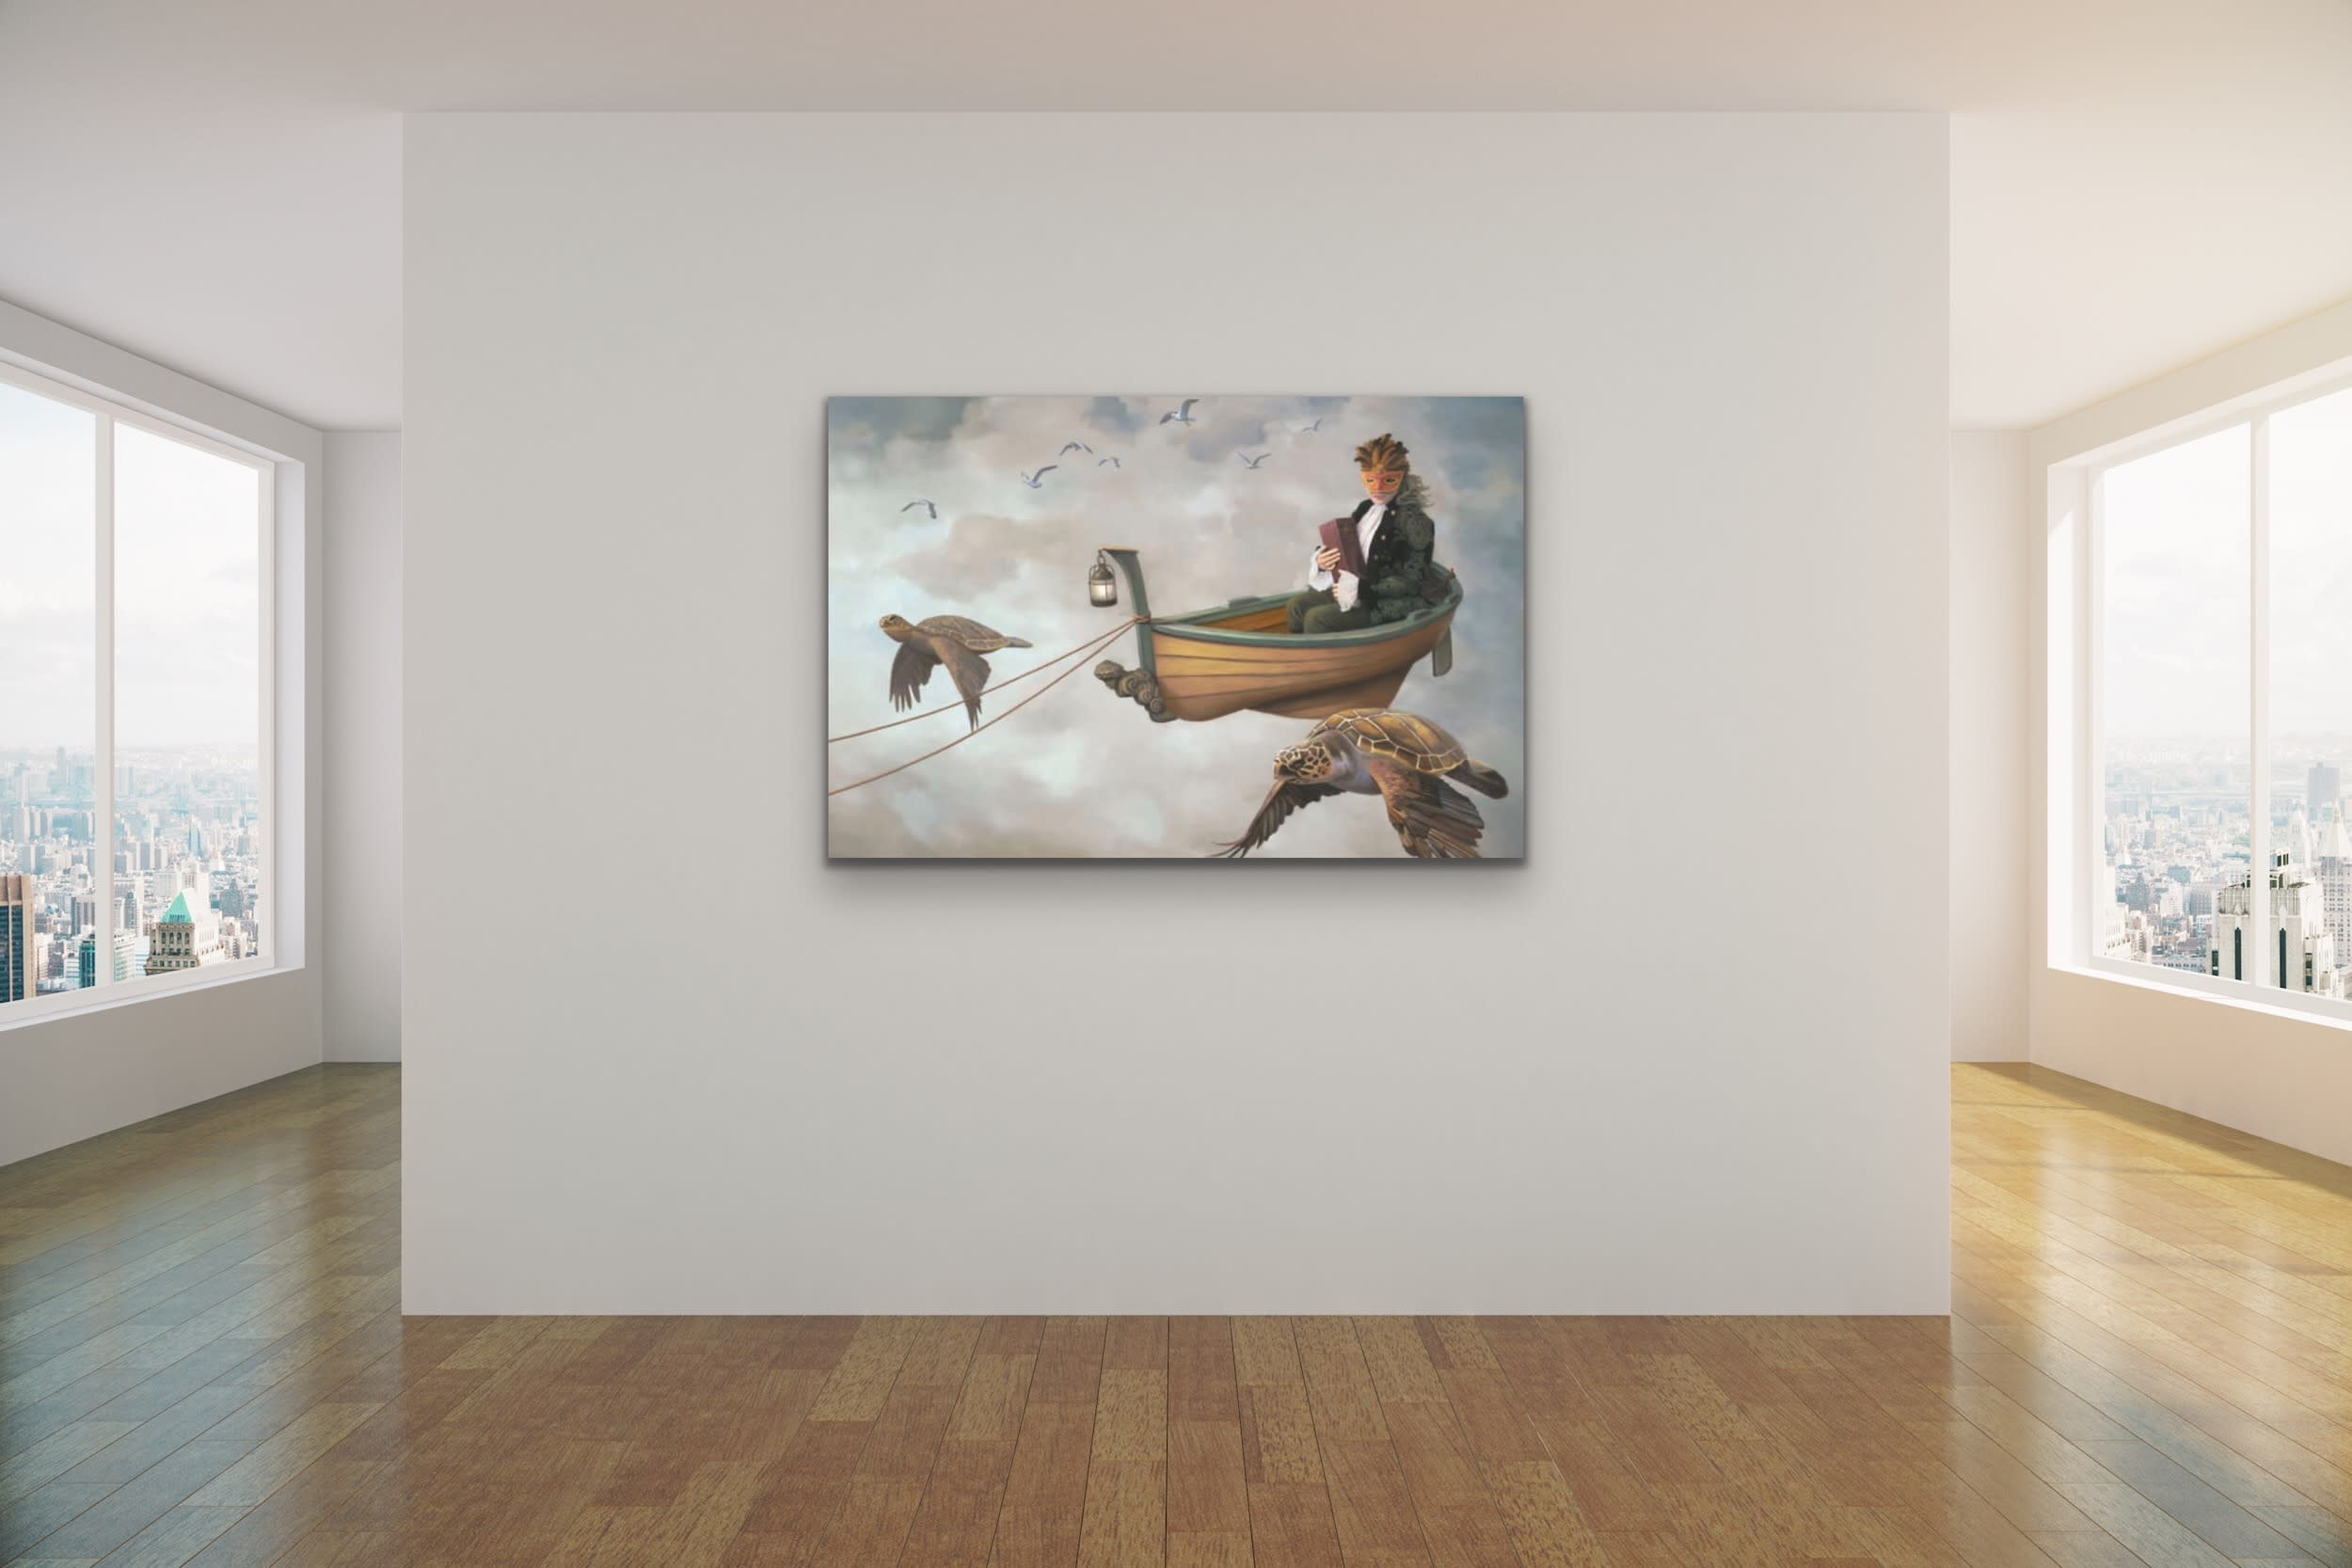 <div class='title'>           Paul Bond Magical Realism Poetry Serene Landscape Animals Nature Surreal Metaphorical Whimsical Fantasy Evo Art Maui Lahaina Front Street Art Gallery 19         </div>